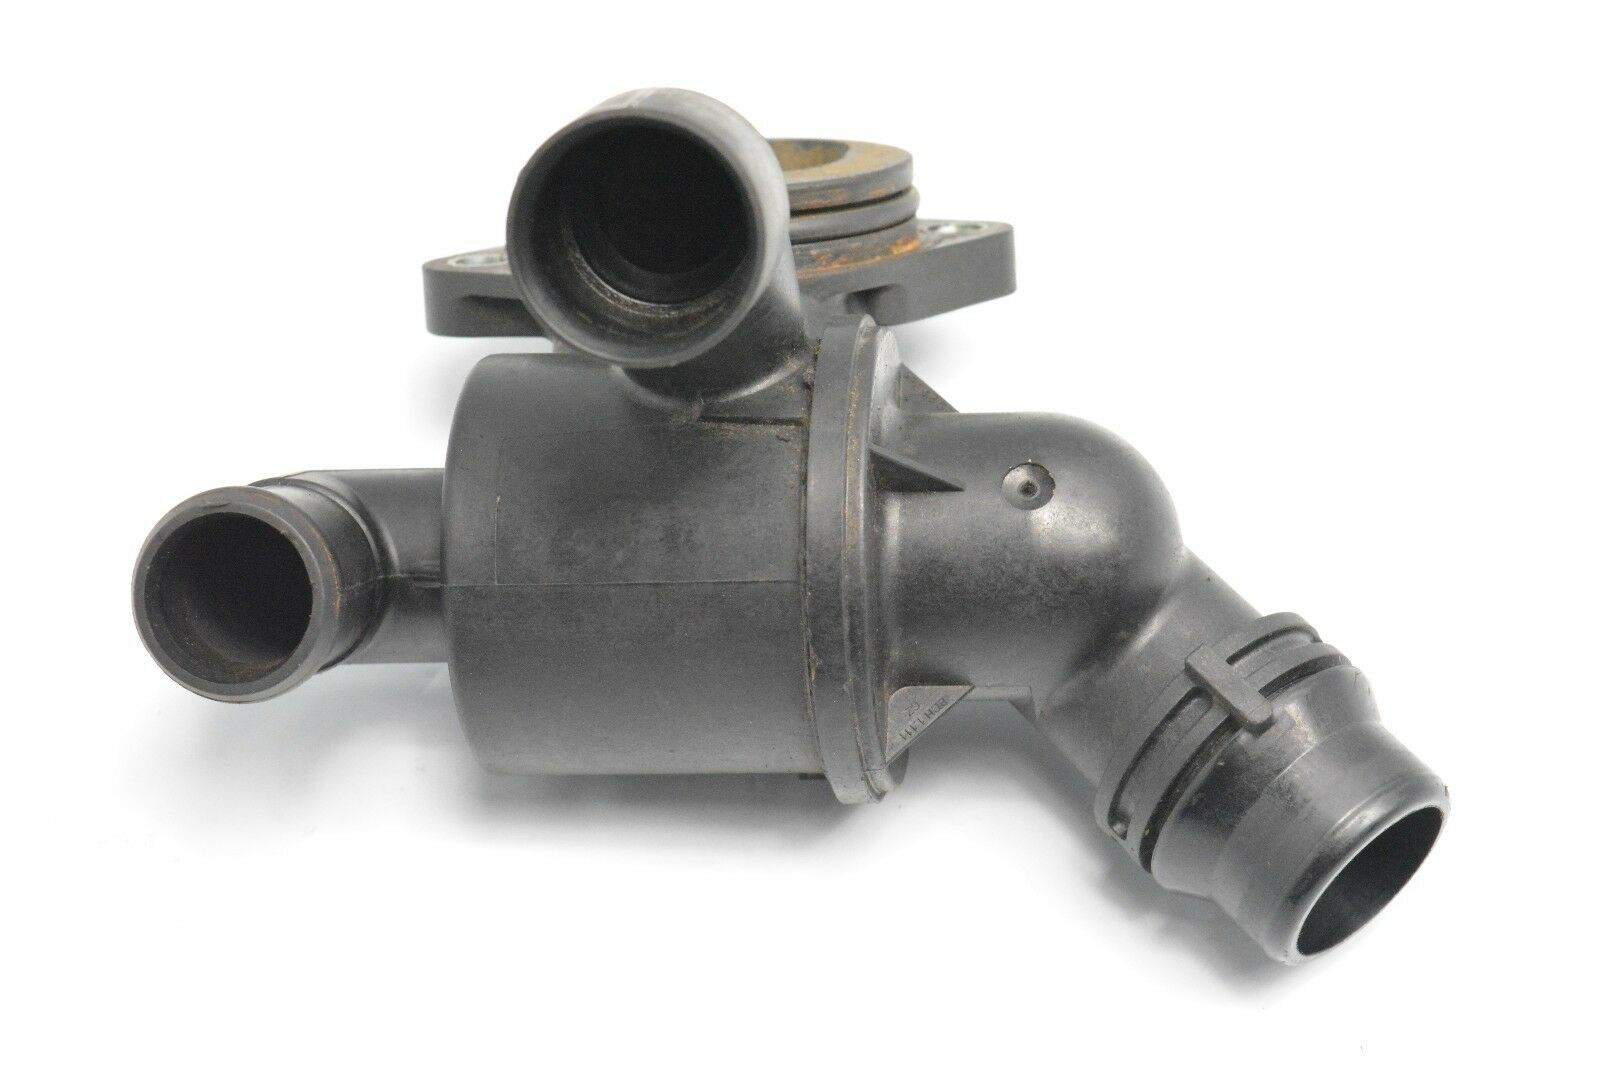 hight resolution of audi a4 a5 a6 q5 2007 2012 2 0tdi engine thermostat housing 03l121111ad 1 of 5only 1 available